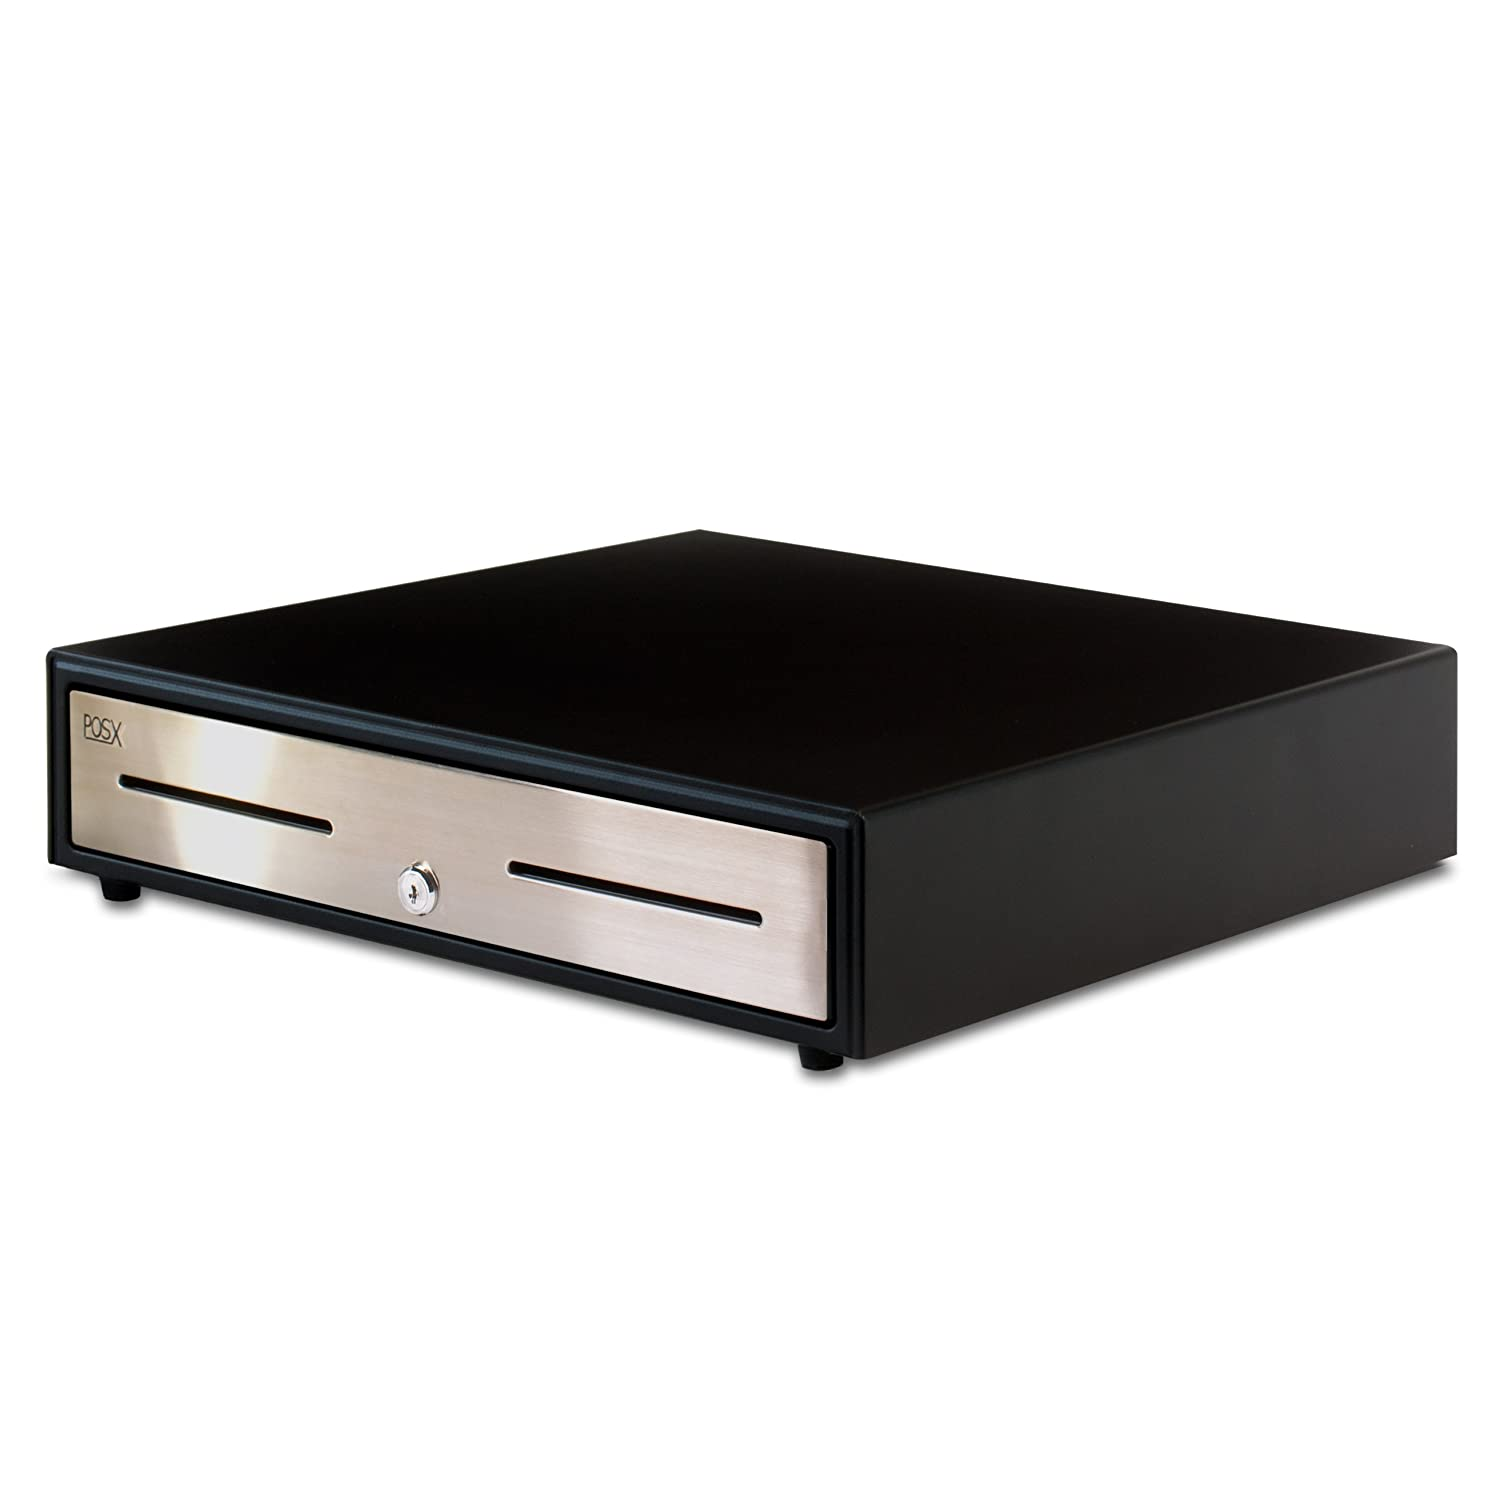 POS-X ION-C18 Cash Drawer, Black, 18.1' x 18.3' x 3.9' Body, Stainless Steel Face ION-C18A-1S 18.1 x 18.3 x 3.9 Body INC